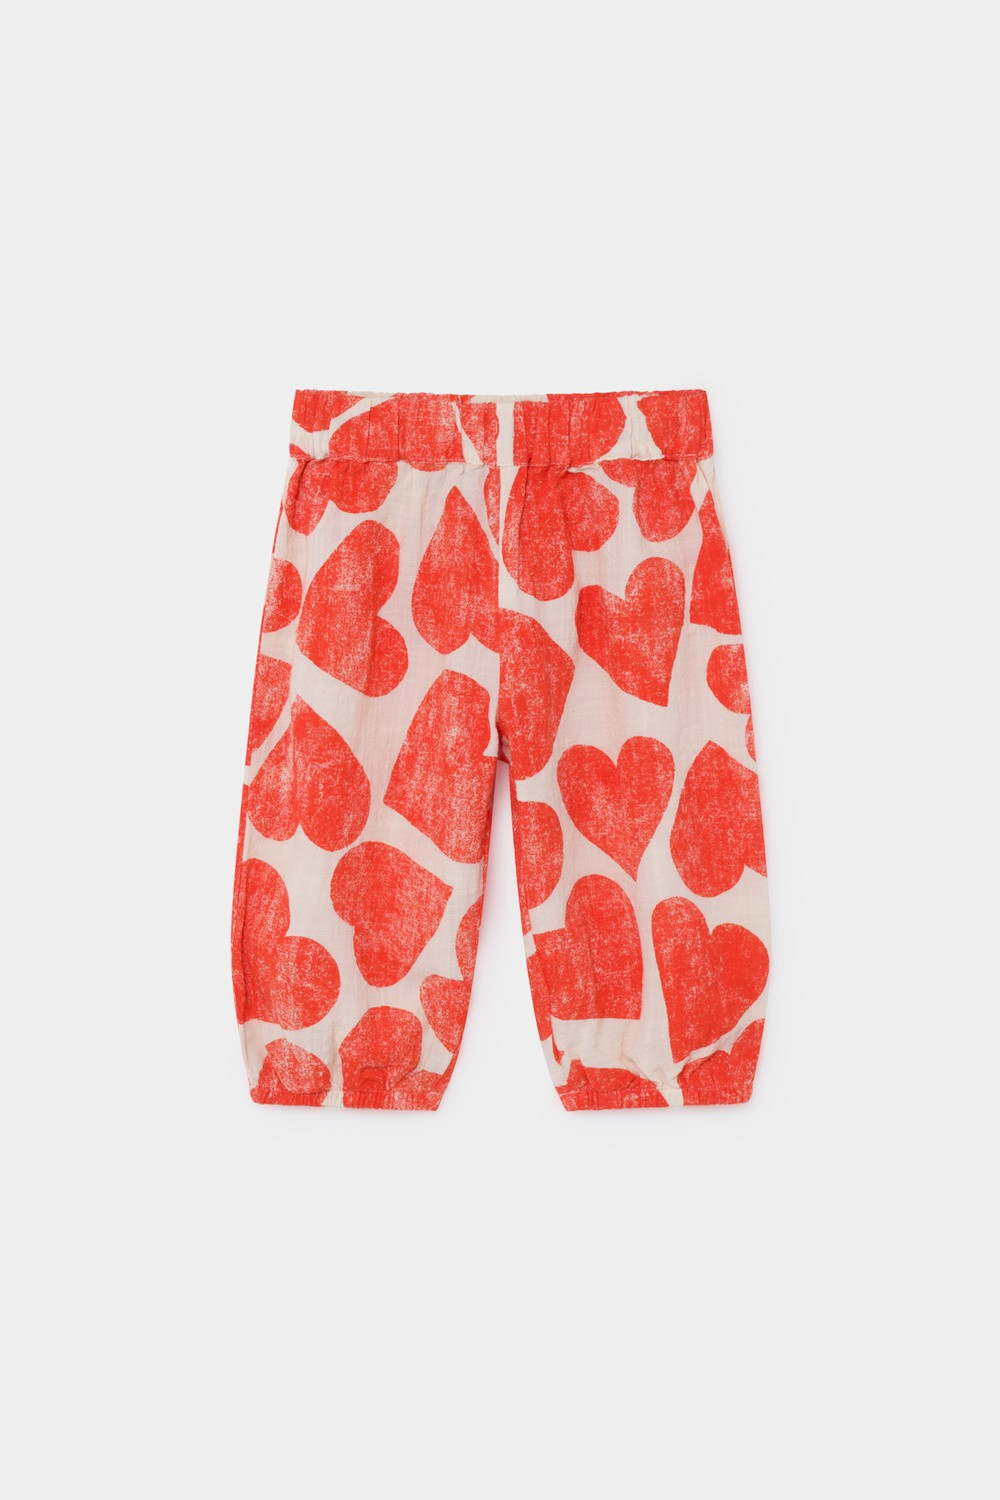 All Over Hearts Baggy Trousers